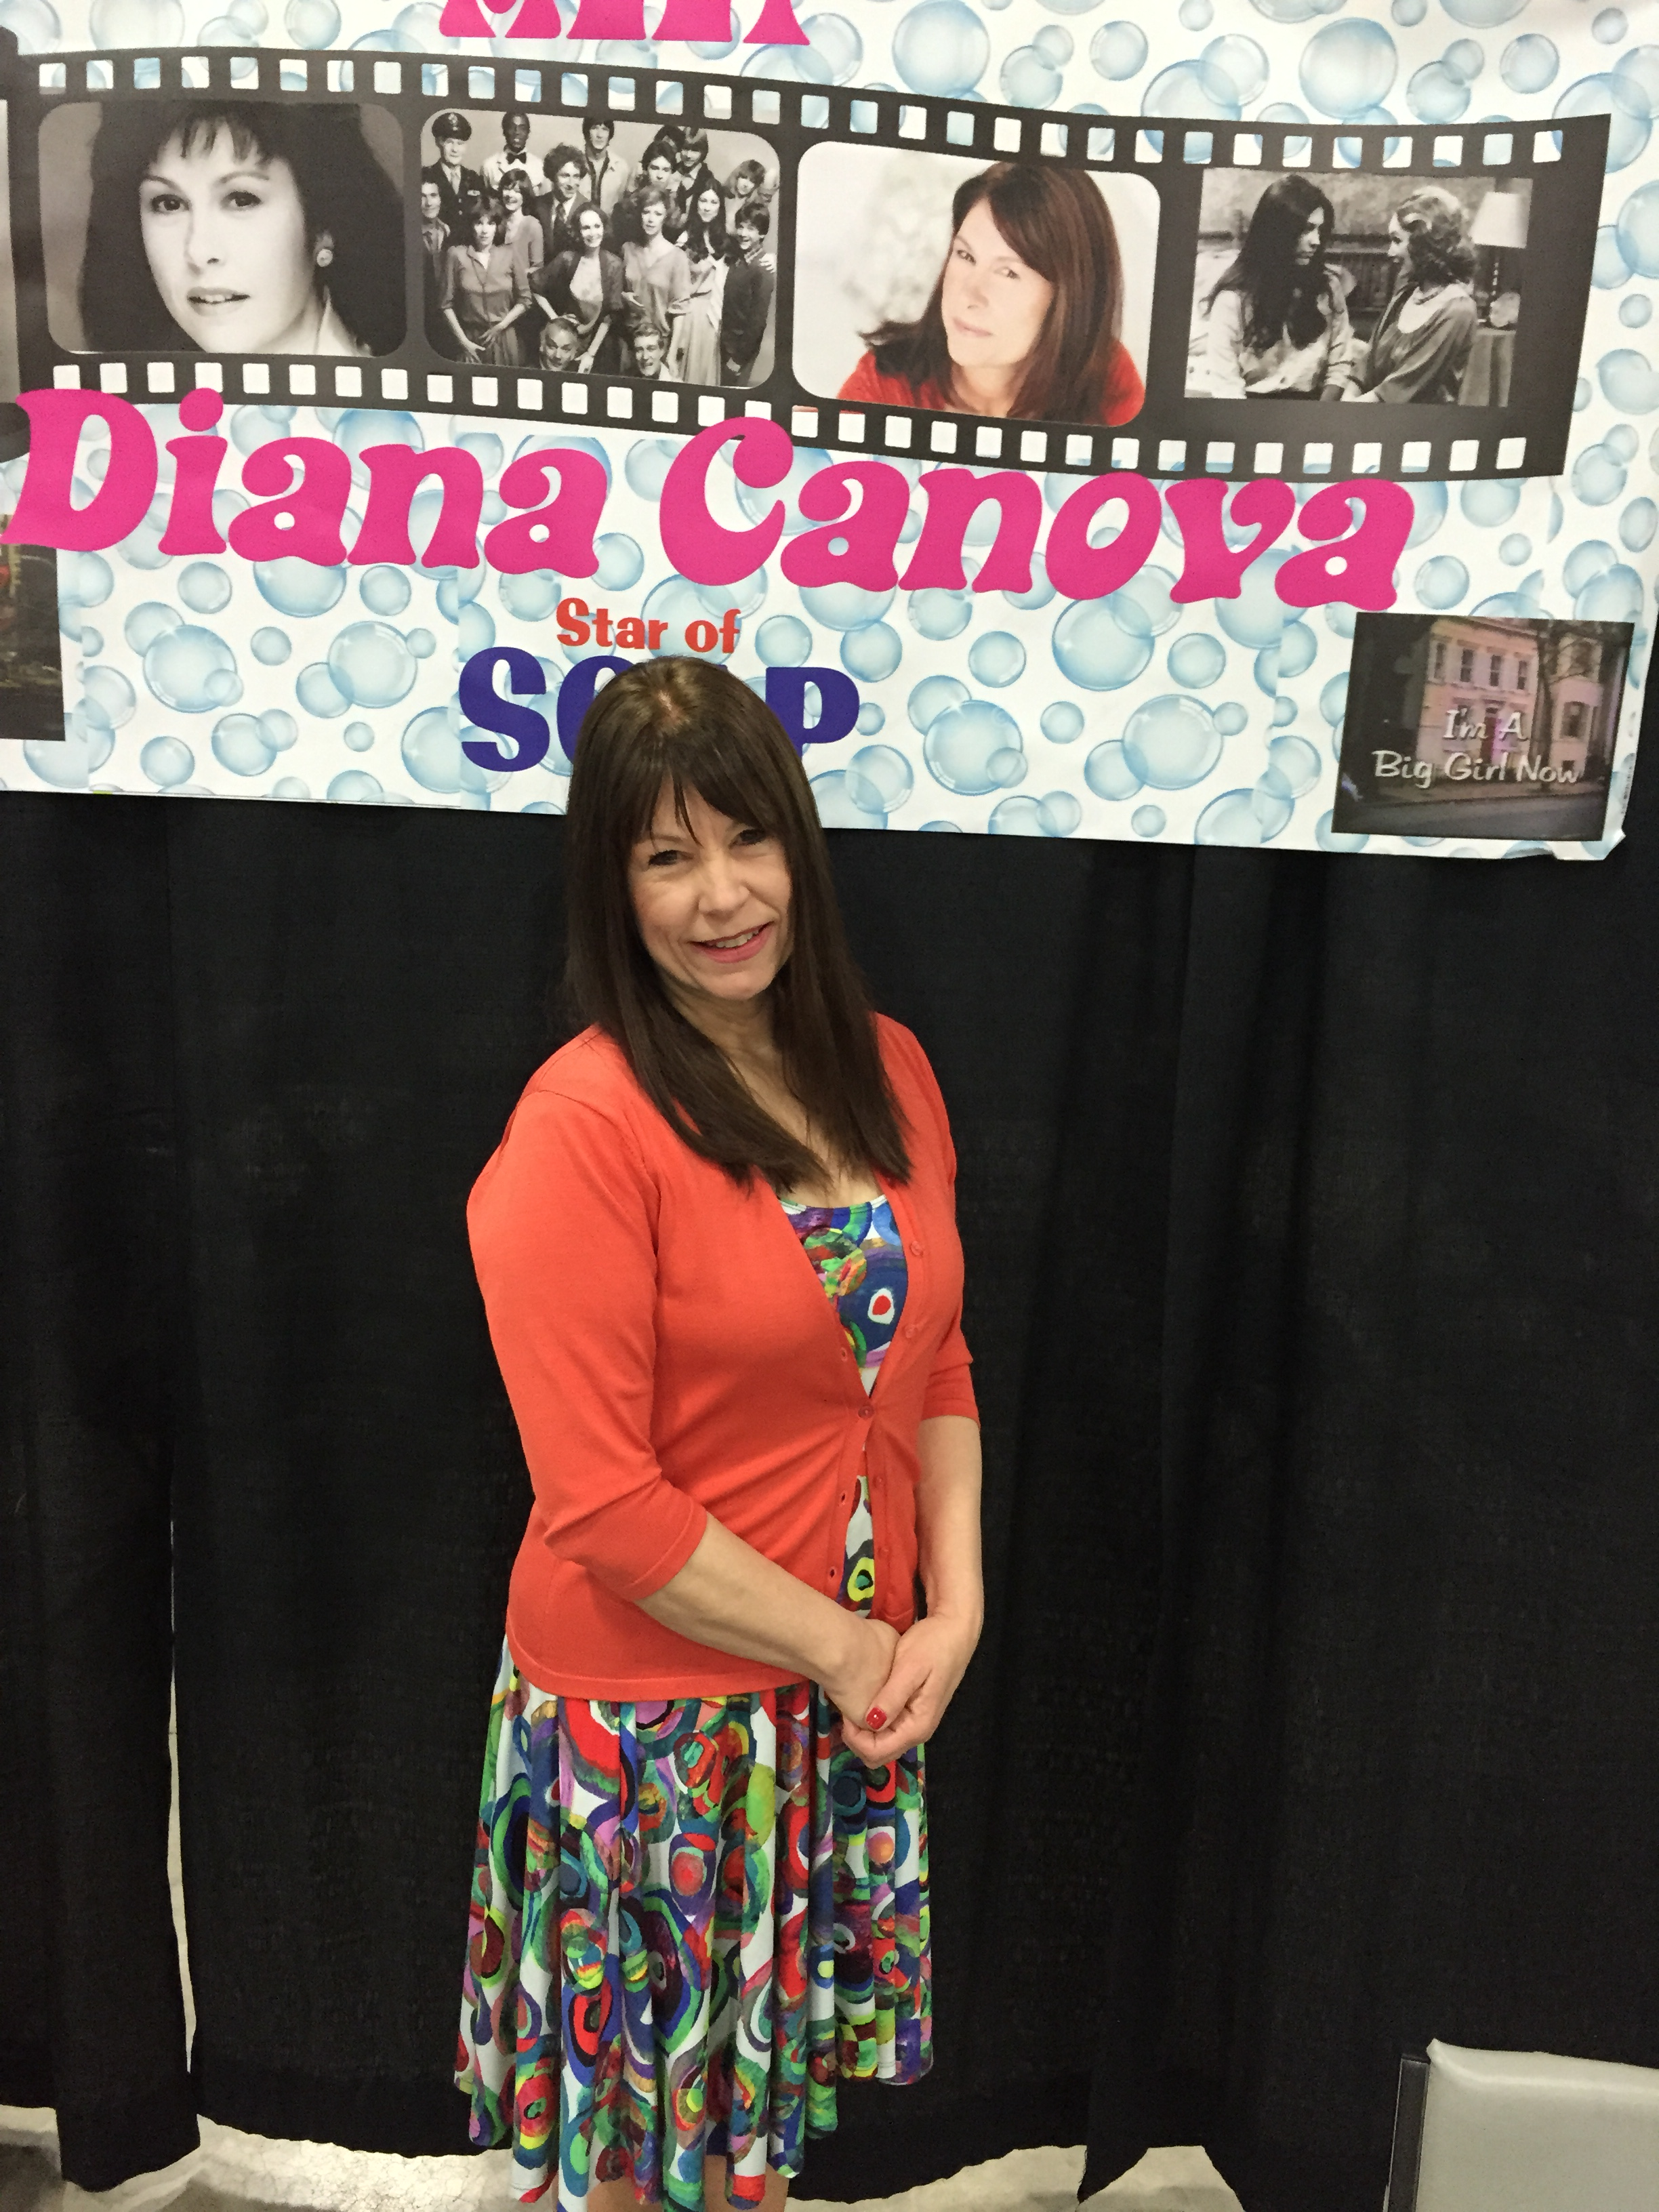 Diana Canova Jason Harris Promotions She has been married to elliot scheiner since july 24, 1982. diana canova jason harris promotions